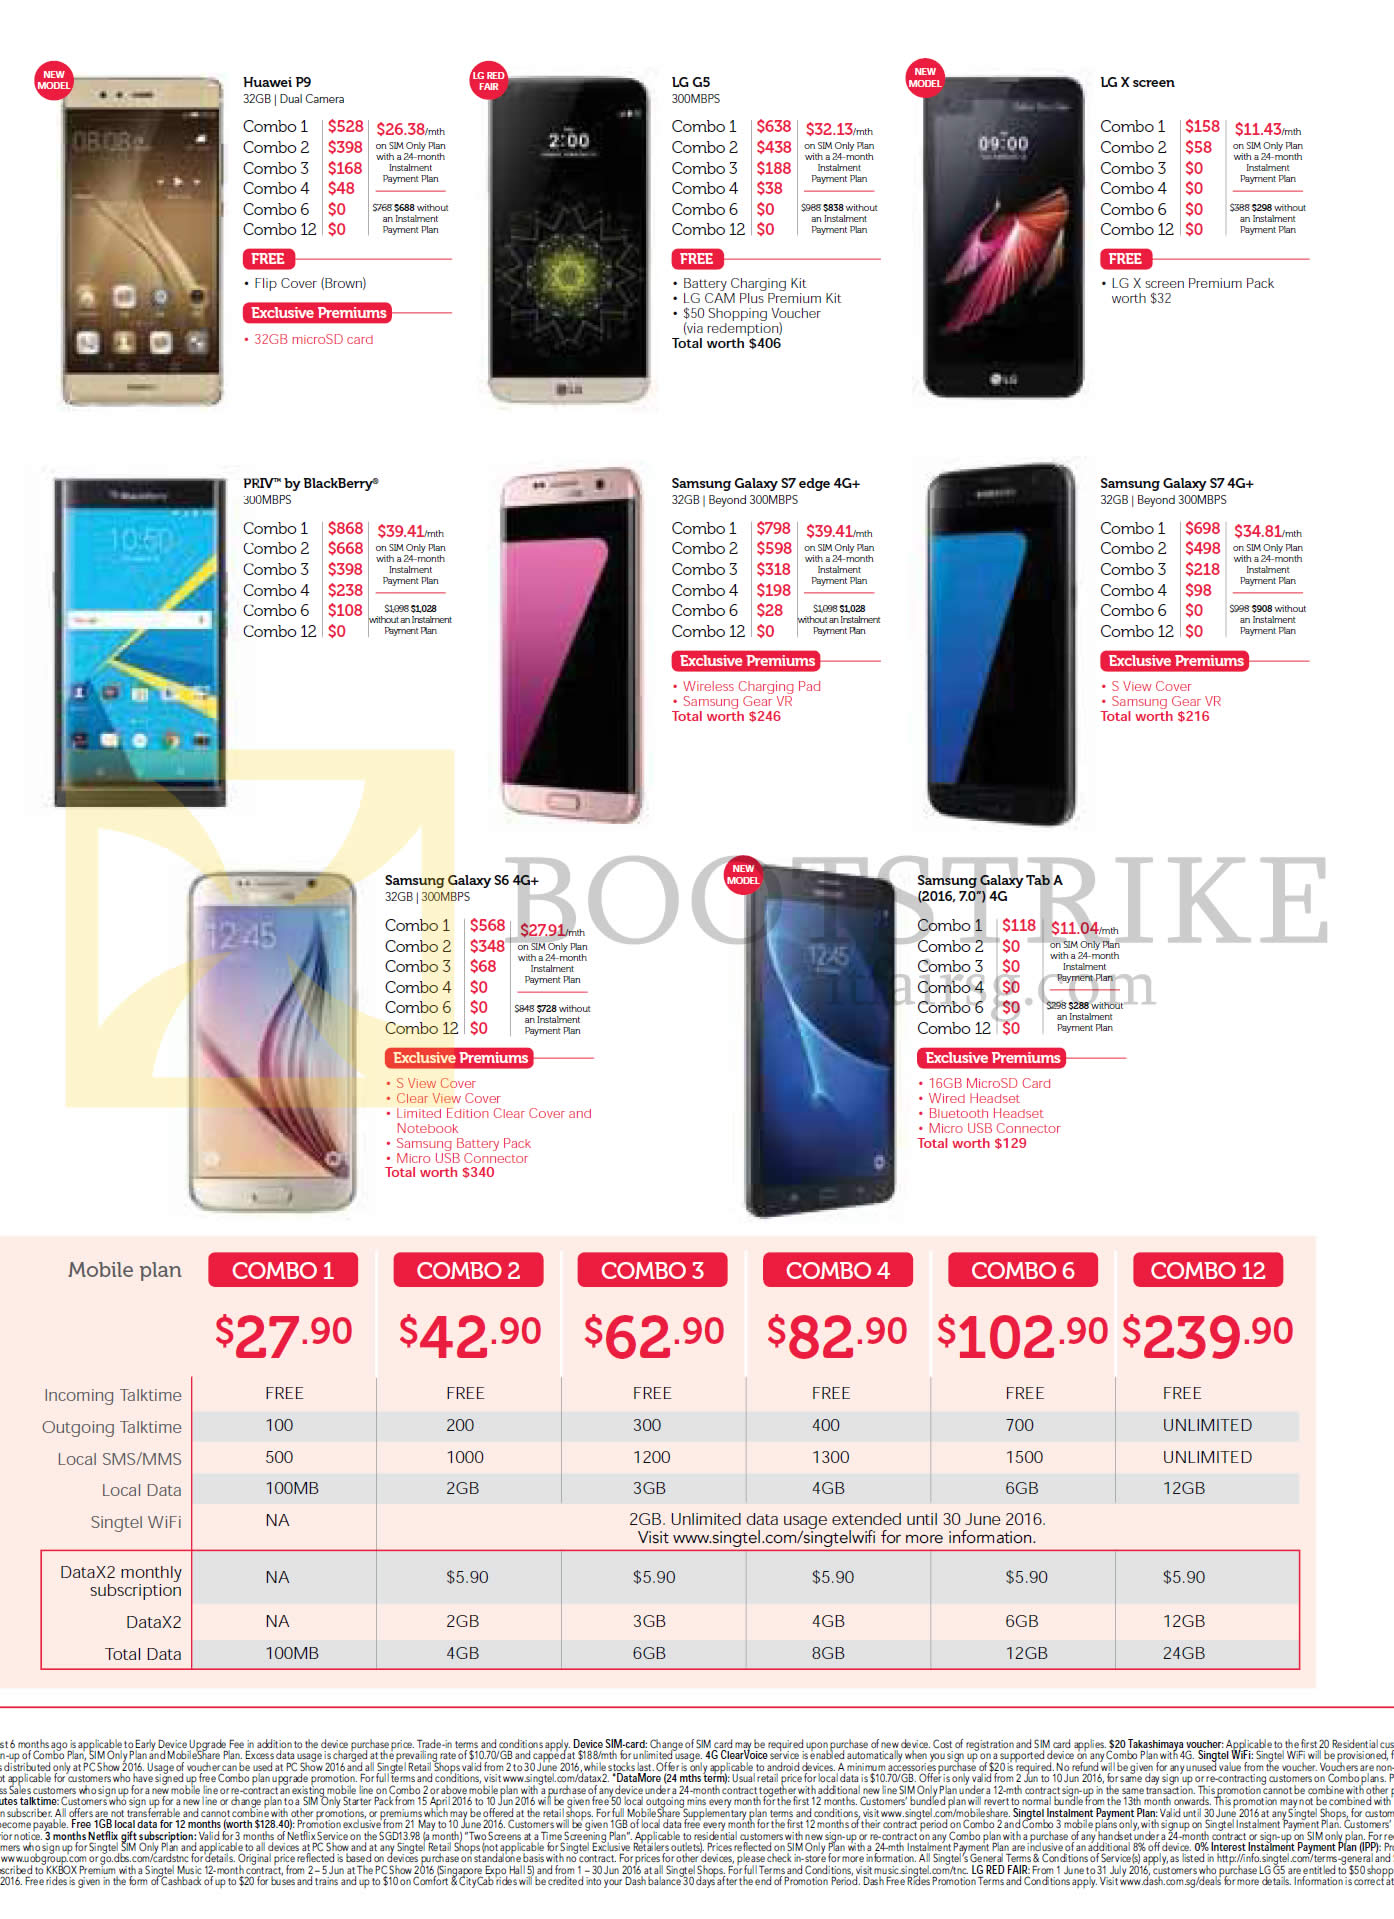 PC SHOW 2016 price list image brochure of Singtel Mobile Phones, Combo Plans, Huawei P9, LG G5, X Screen, Blackberry Priv, Samsung Galaxy Z7 Edge, S7, S6, Tab A 2016 7.0, Combo 1, 2, 3, 4, 6, 12